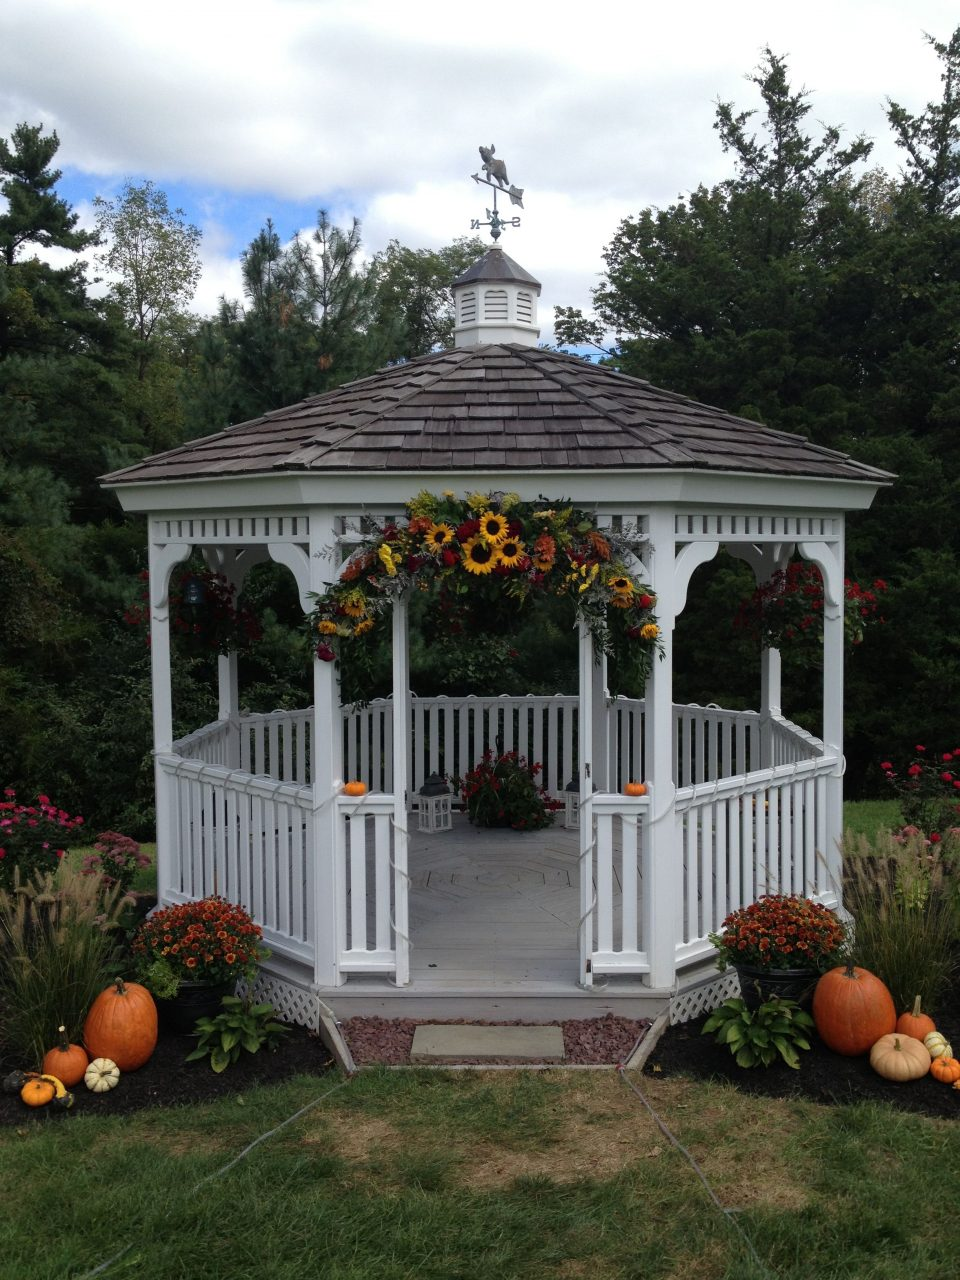 Decorated Gazebo For A Fall Wedding From The Garden Path Wedding